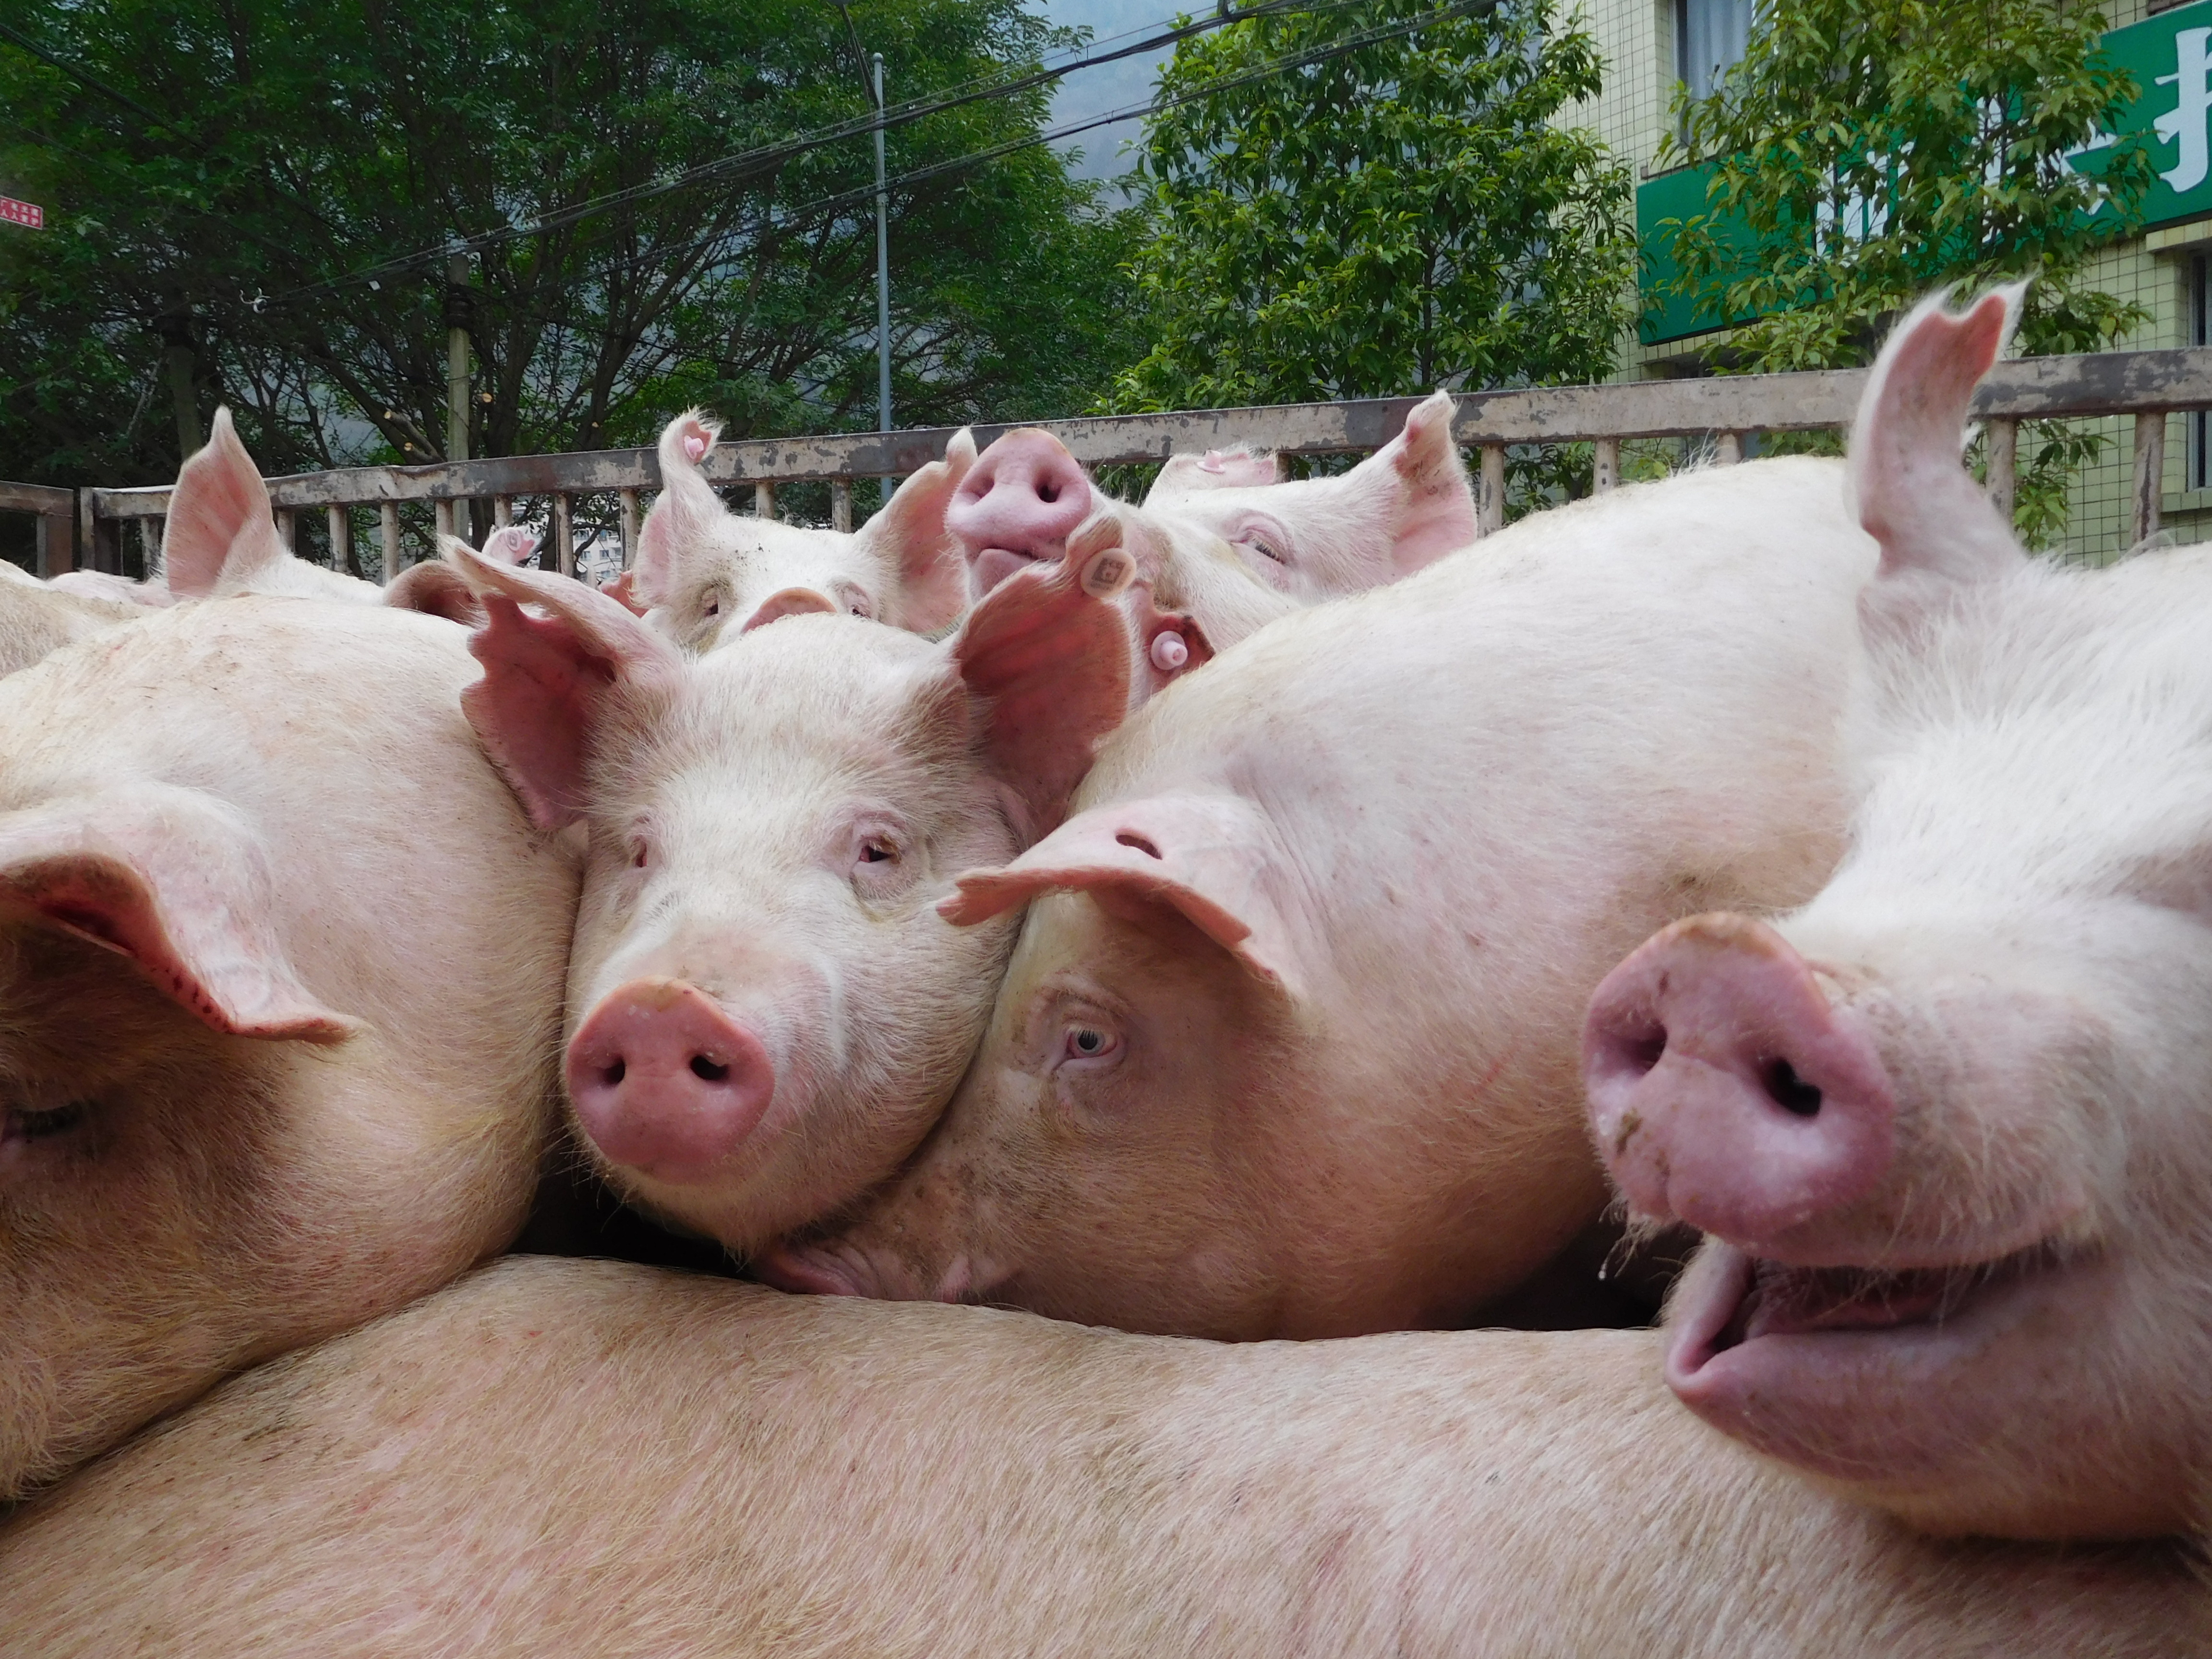 pigs with african swine fever